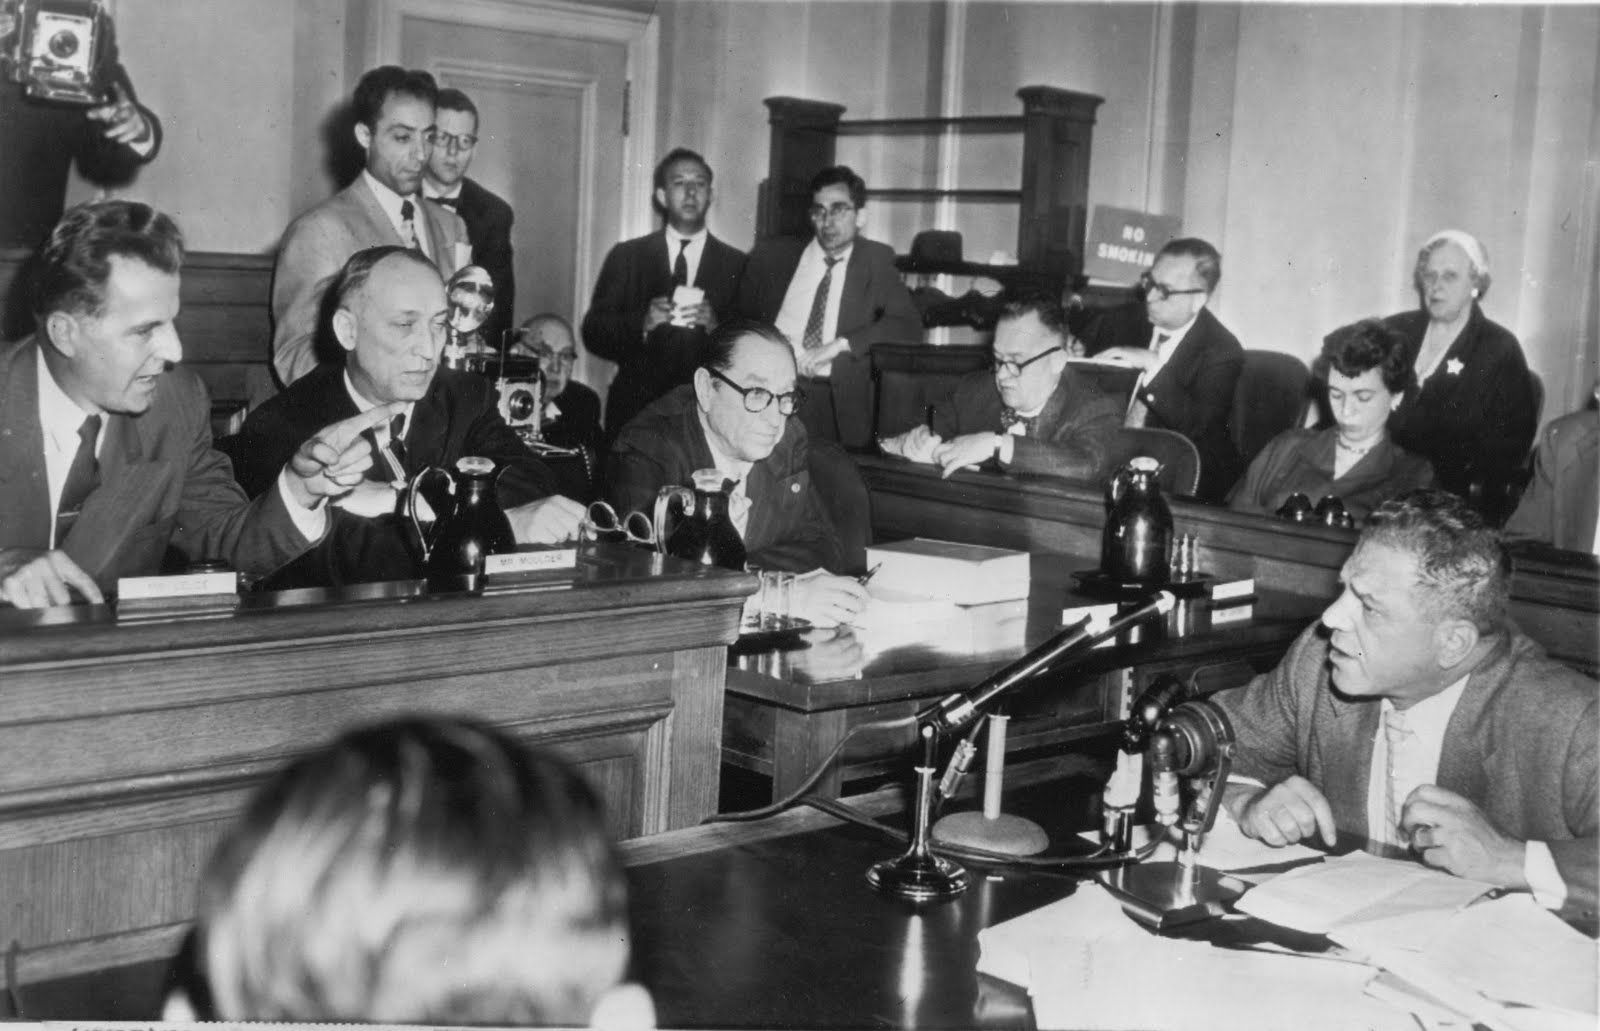 House On Unamerican Activities Committee Huac Hearings The Common Opening Question To Witnesses Are Lionel Stander American Actors This Or That Questions